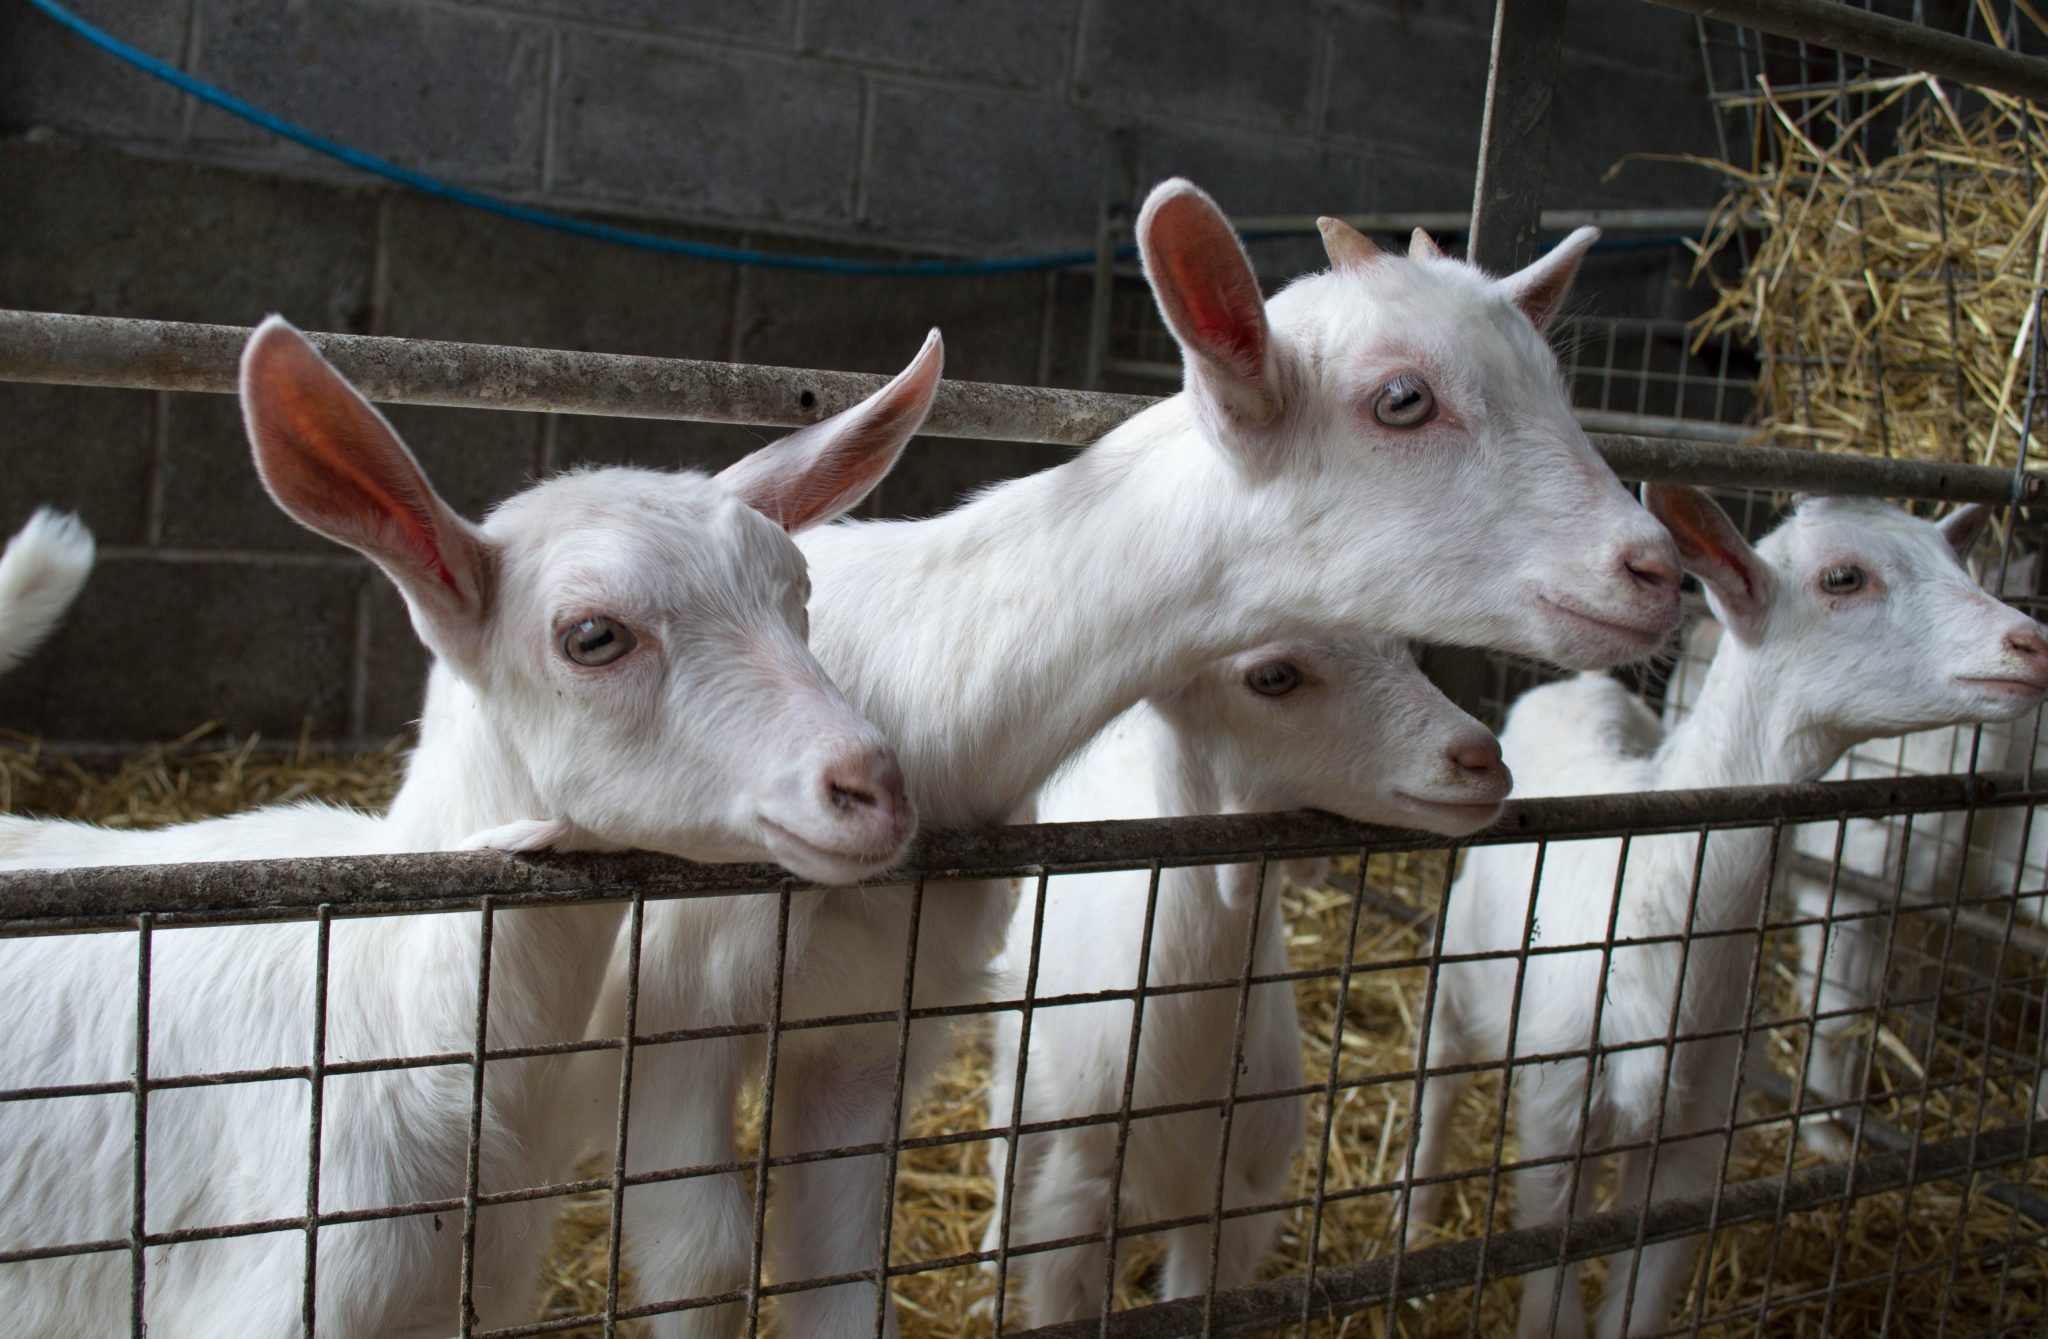 A group of young goats in a pen enclosure